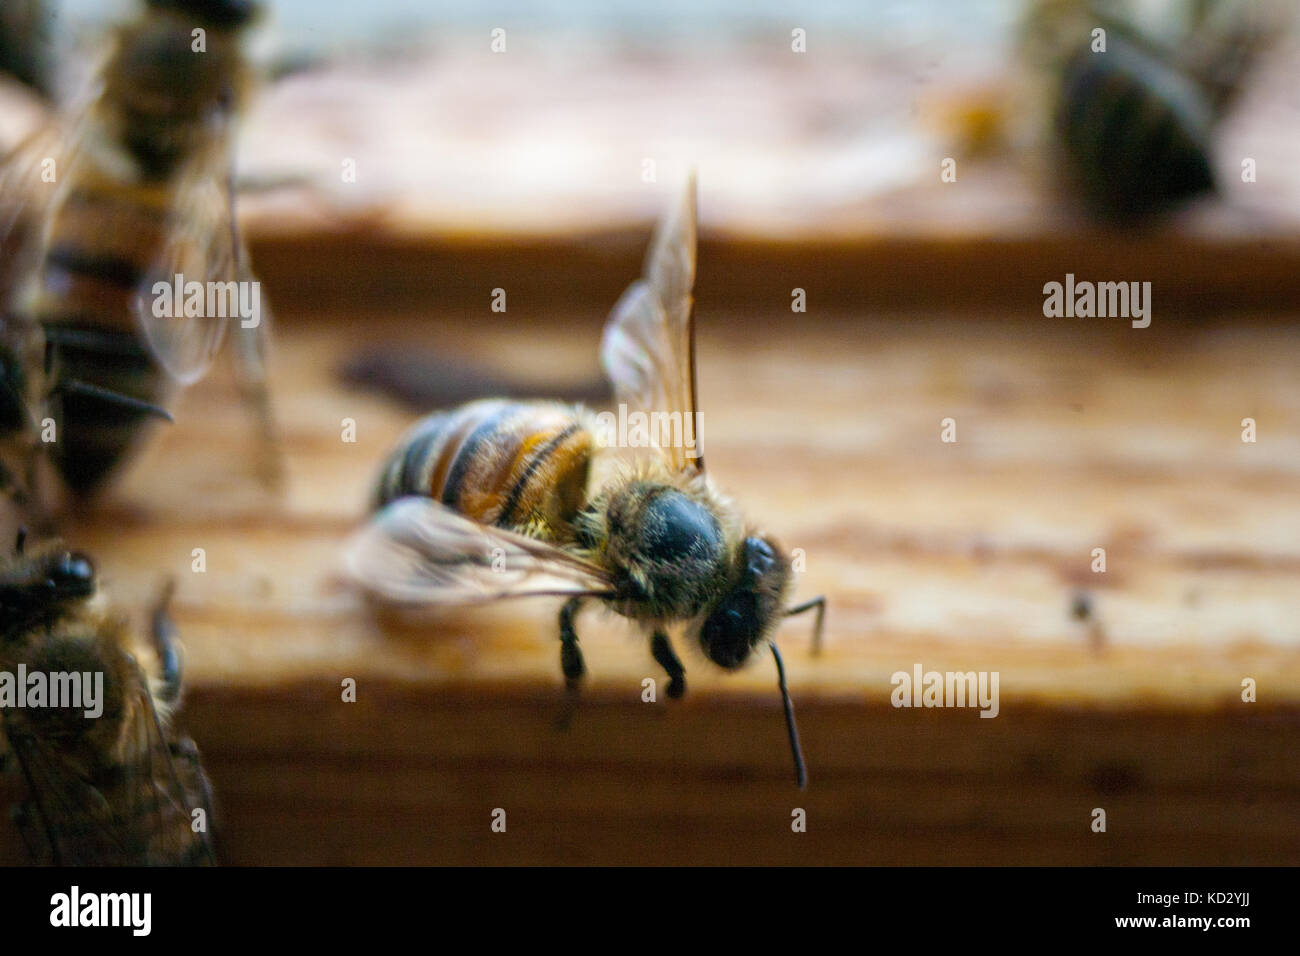 Bees working the carpathian breed close-up - Stock Image